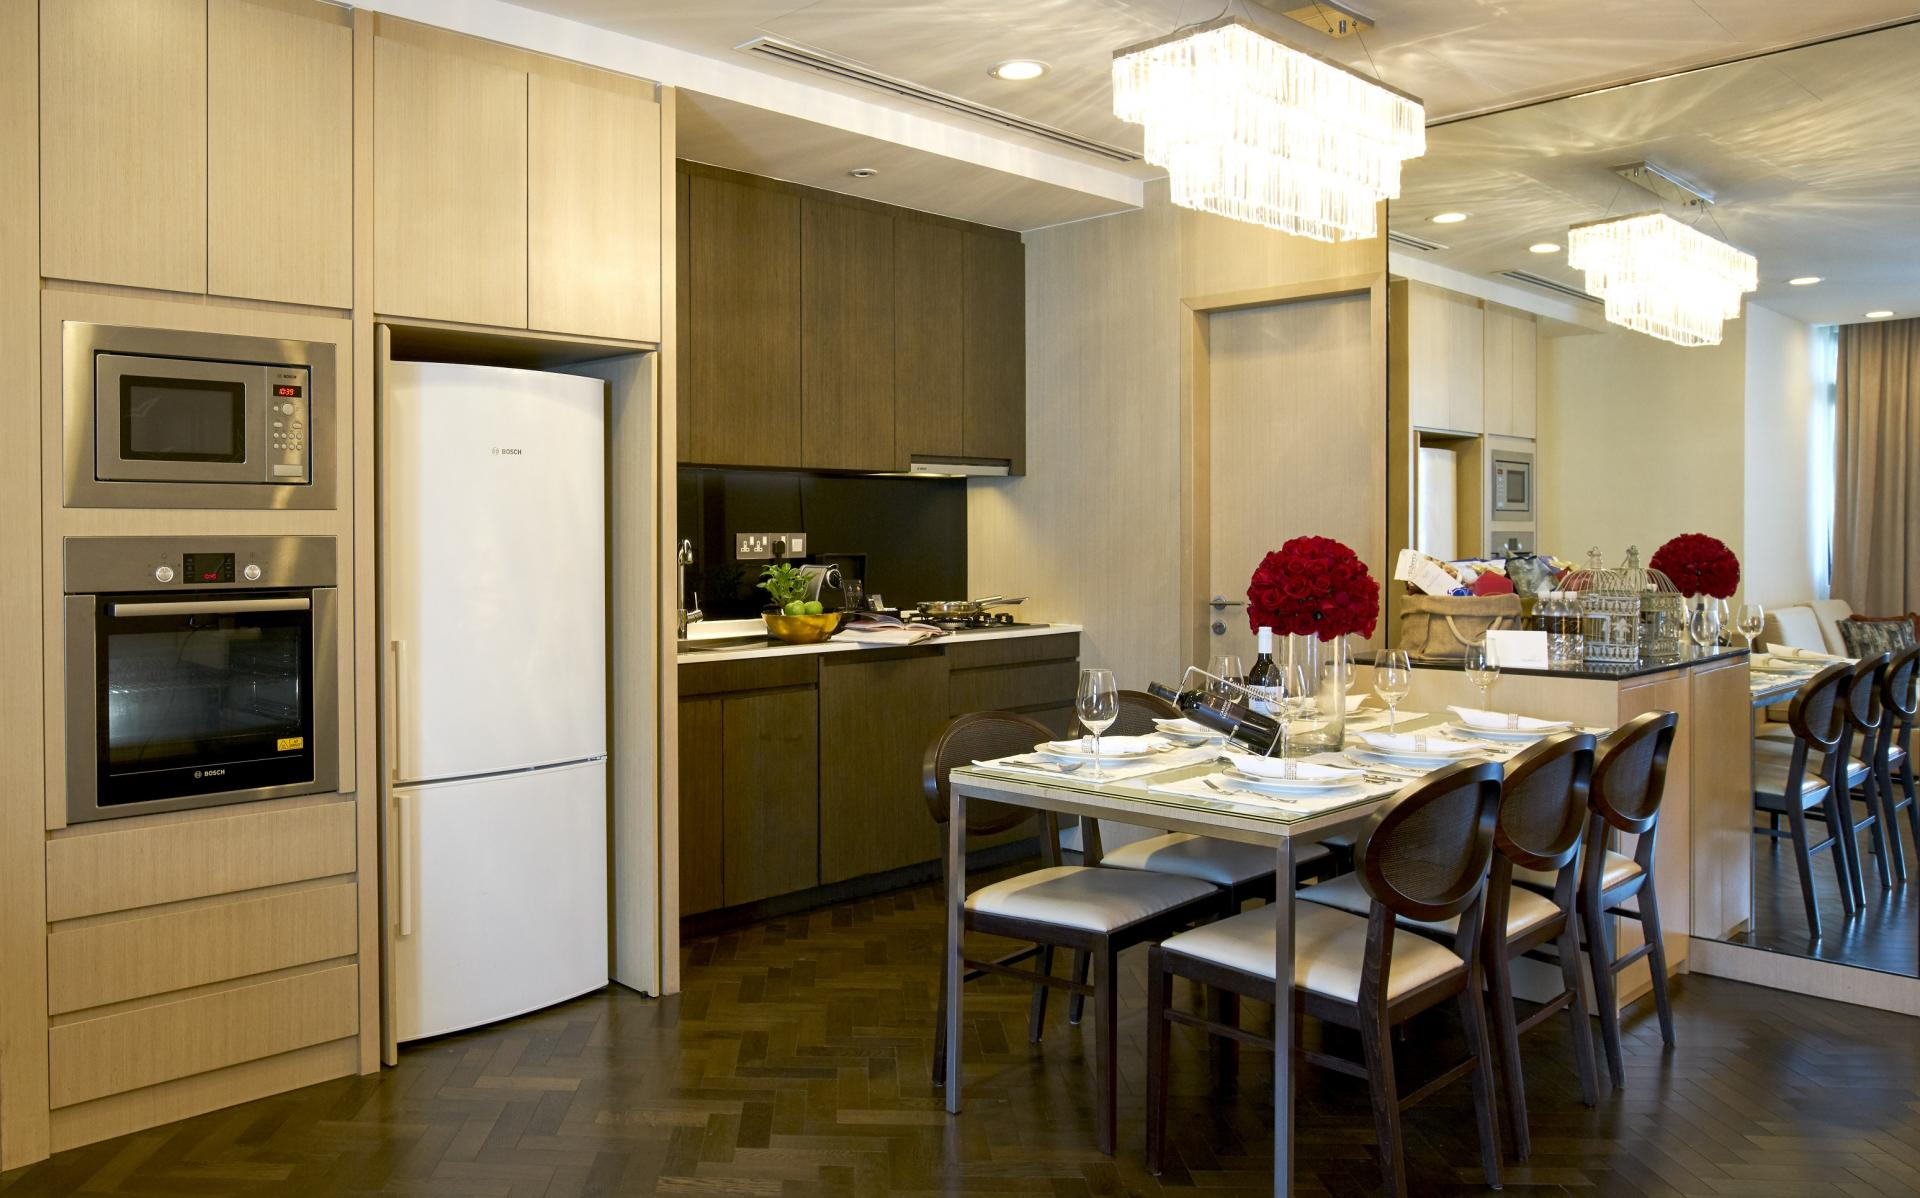 Kitchen facilities at Fraser Suites Singapore